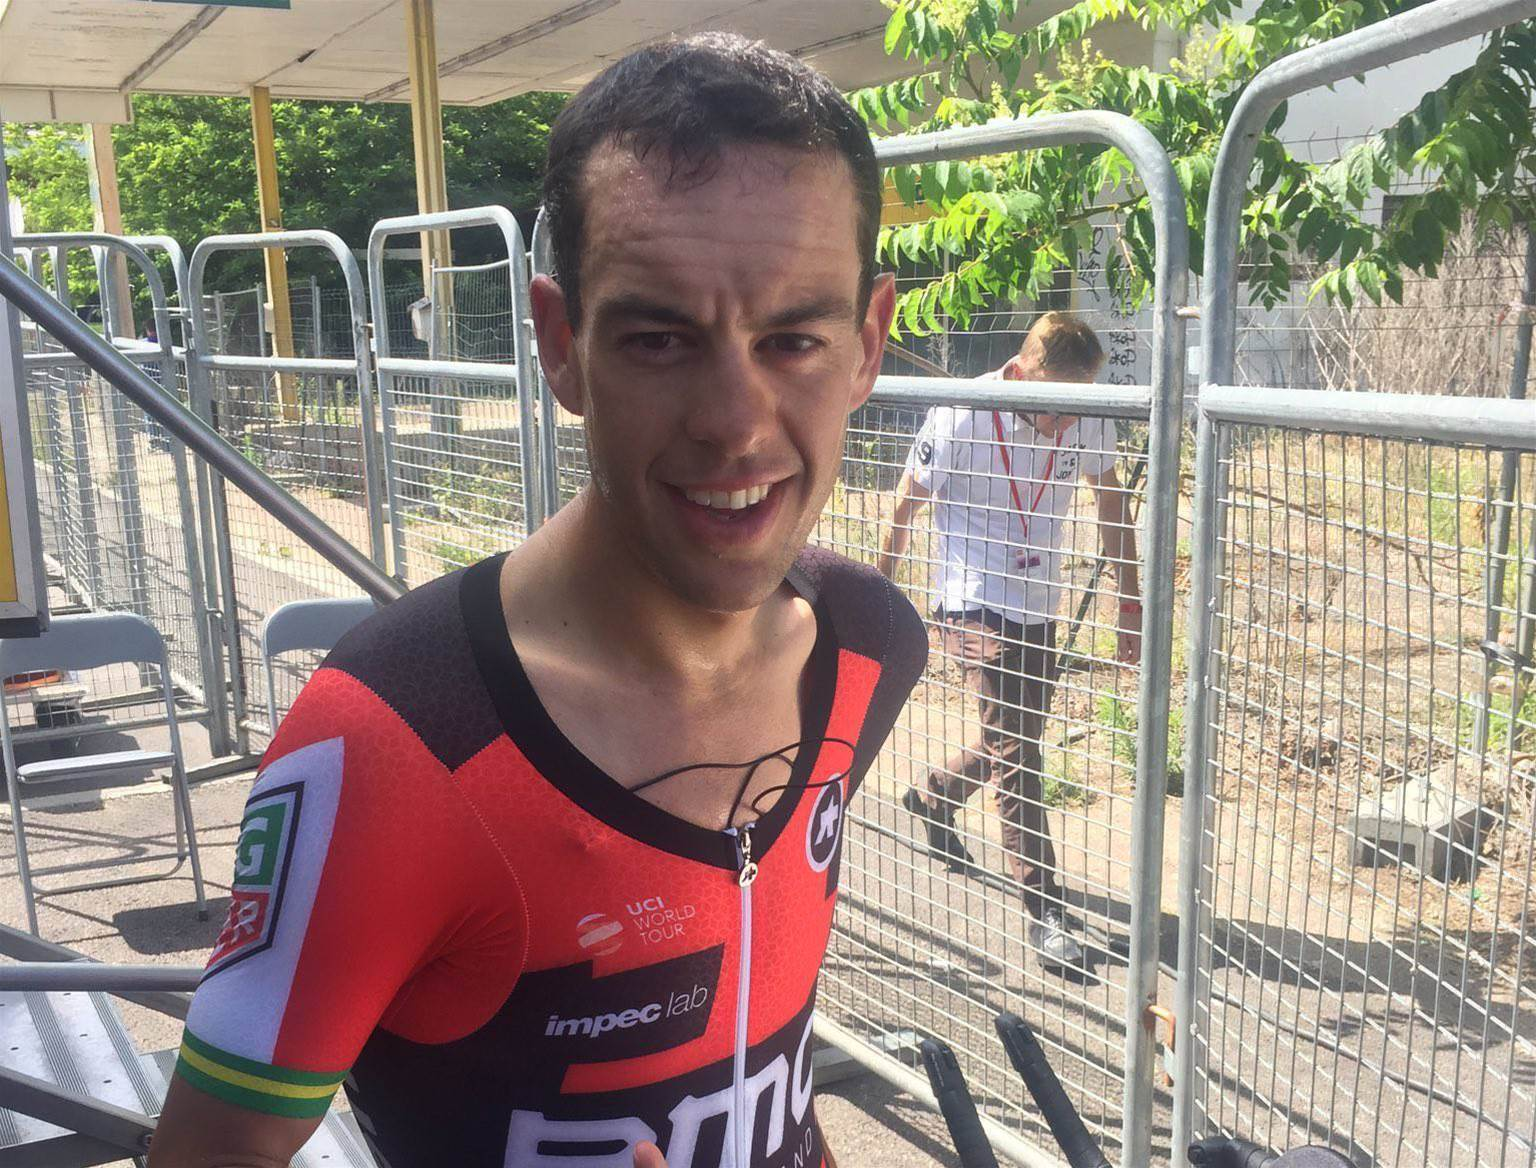 Porte can win Le Tour says McEwen